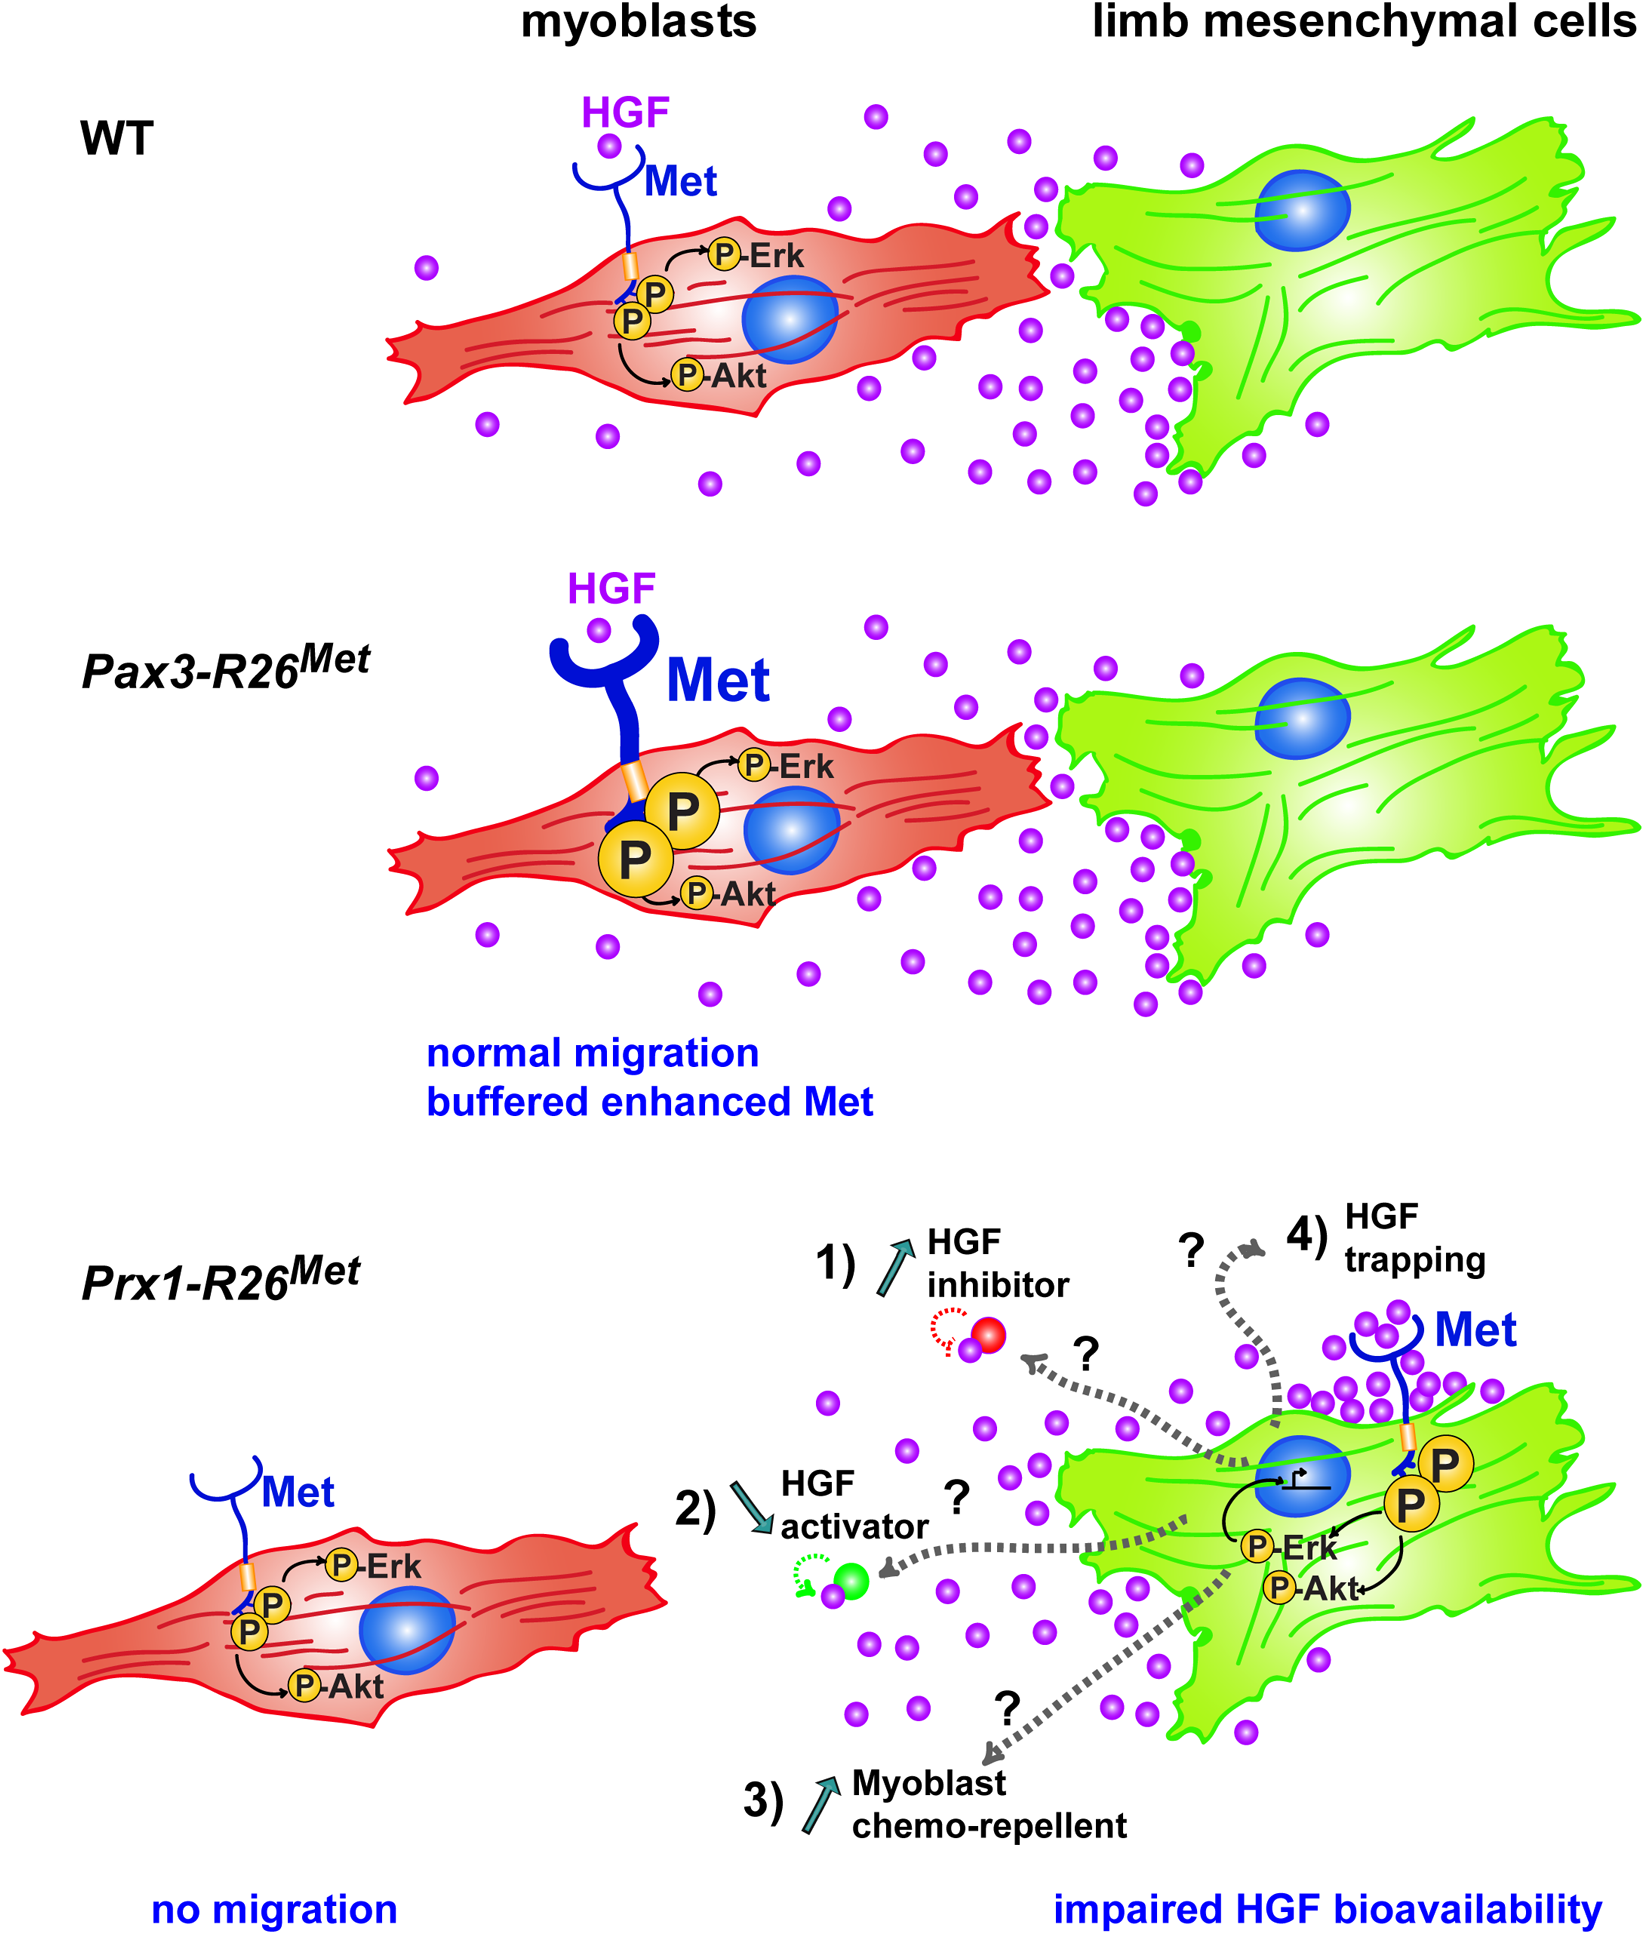 Schematic representation summarizing the different molecular and phenotypic effects of enhanced Met expression in myoblasts and limb mesenchymal cells.